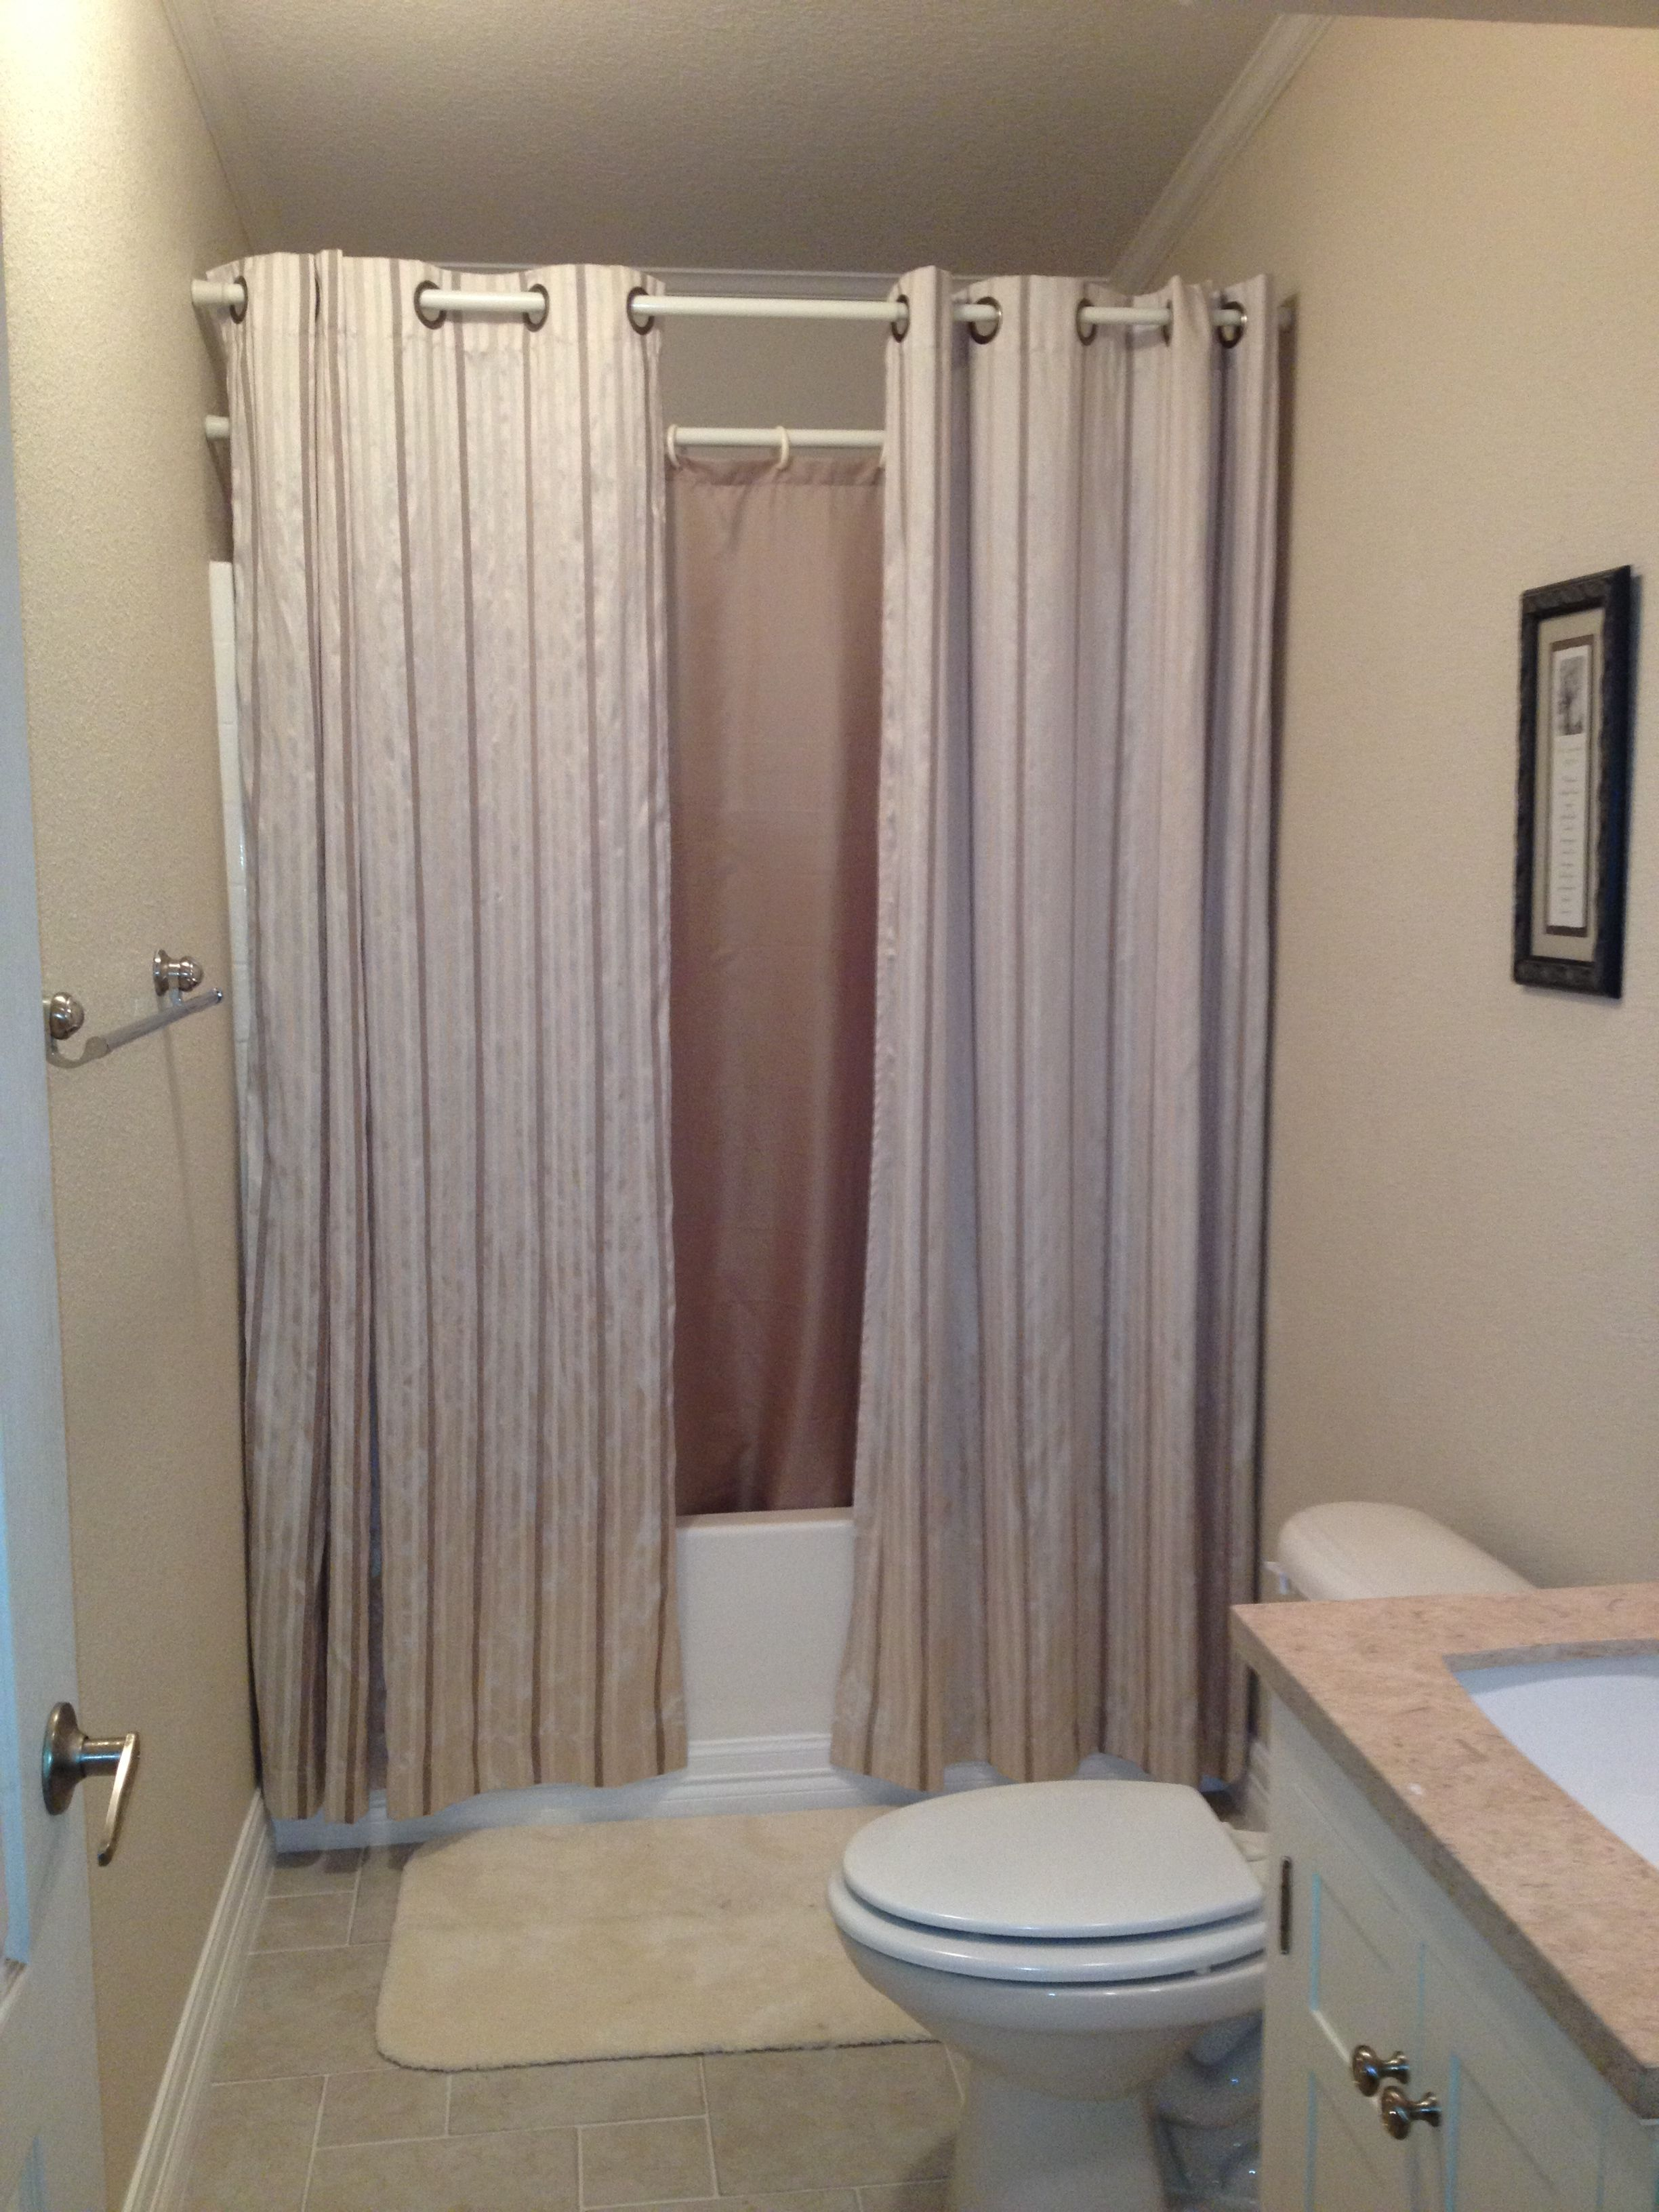 Hanging Shower Curtains To Make Small Bathroom Look Bigger Remodeling Ideas Pinterest